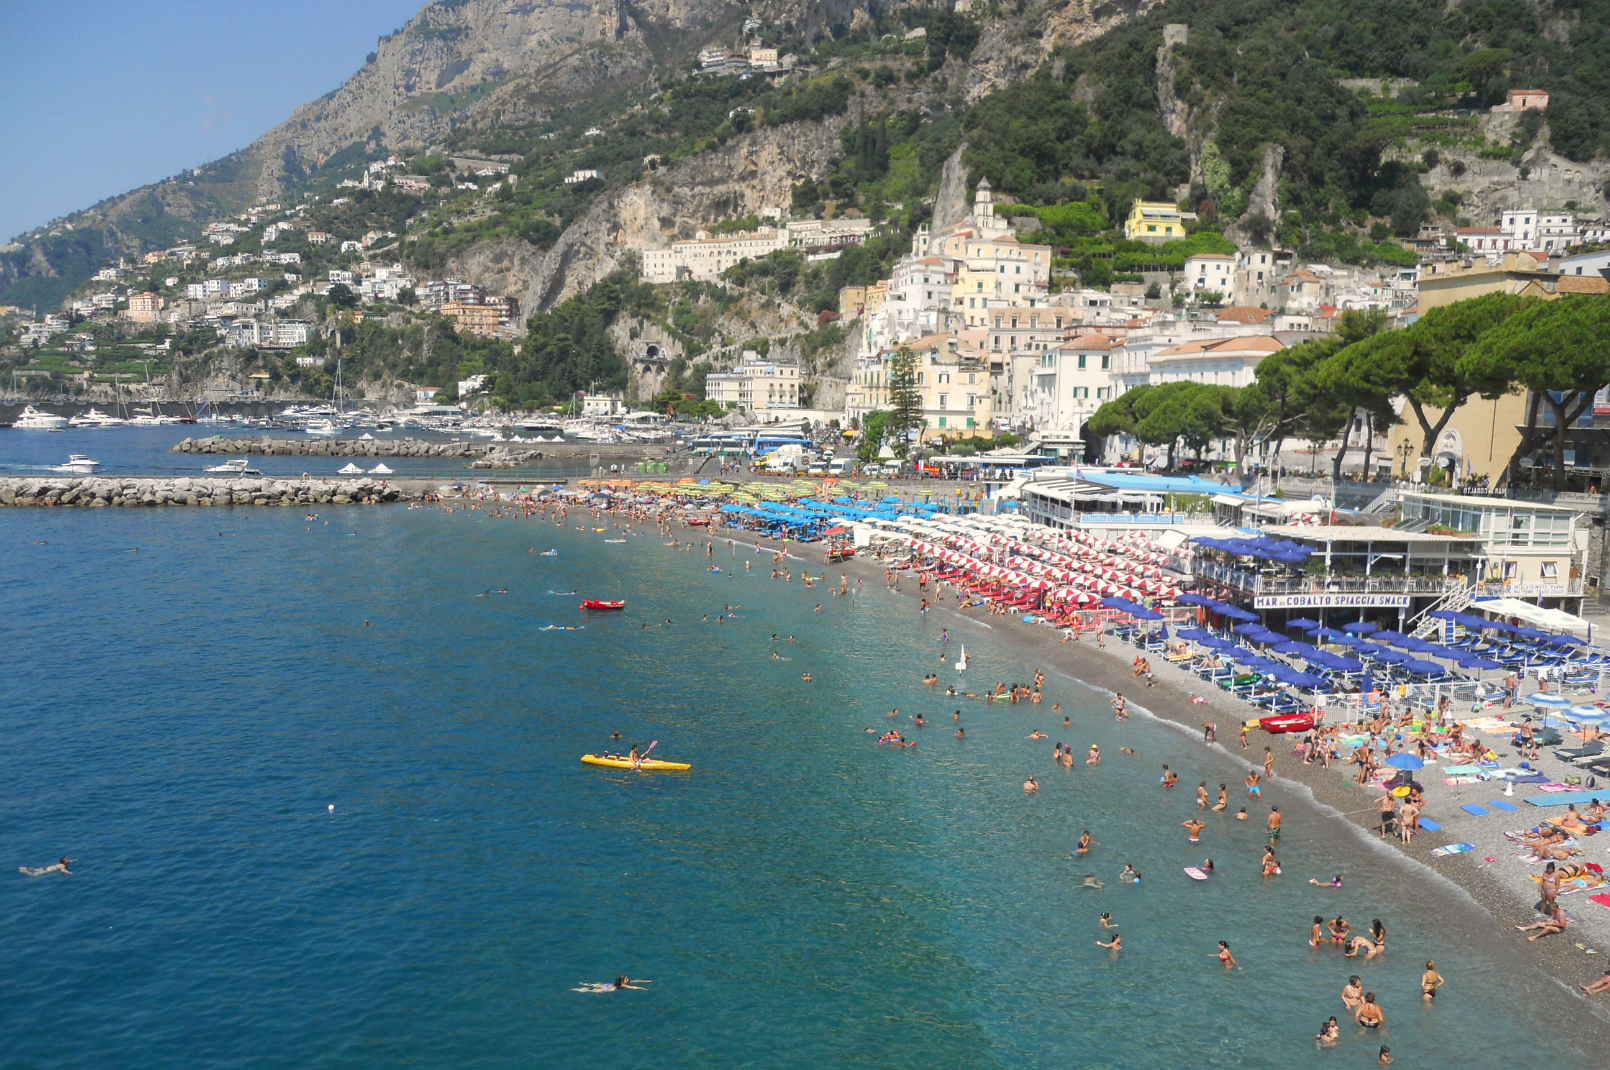 Romantic Spots on the Amalfi Coast Guide